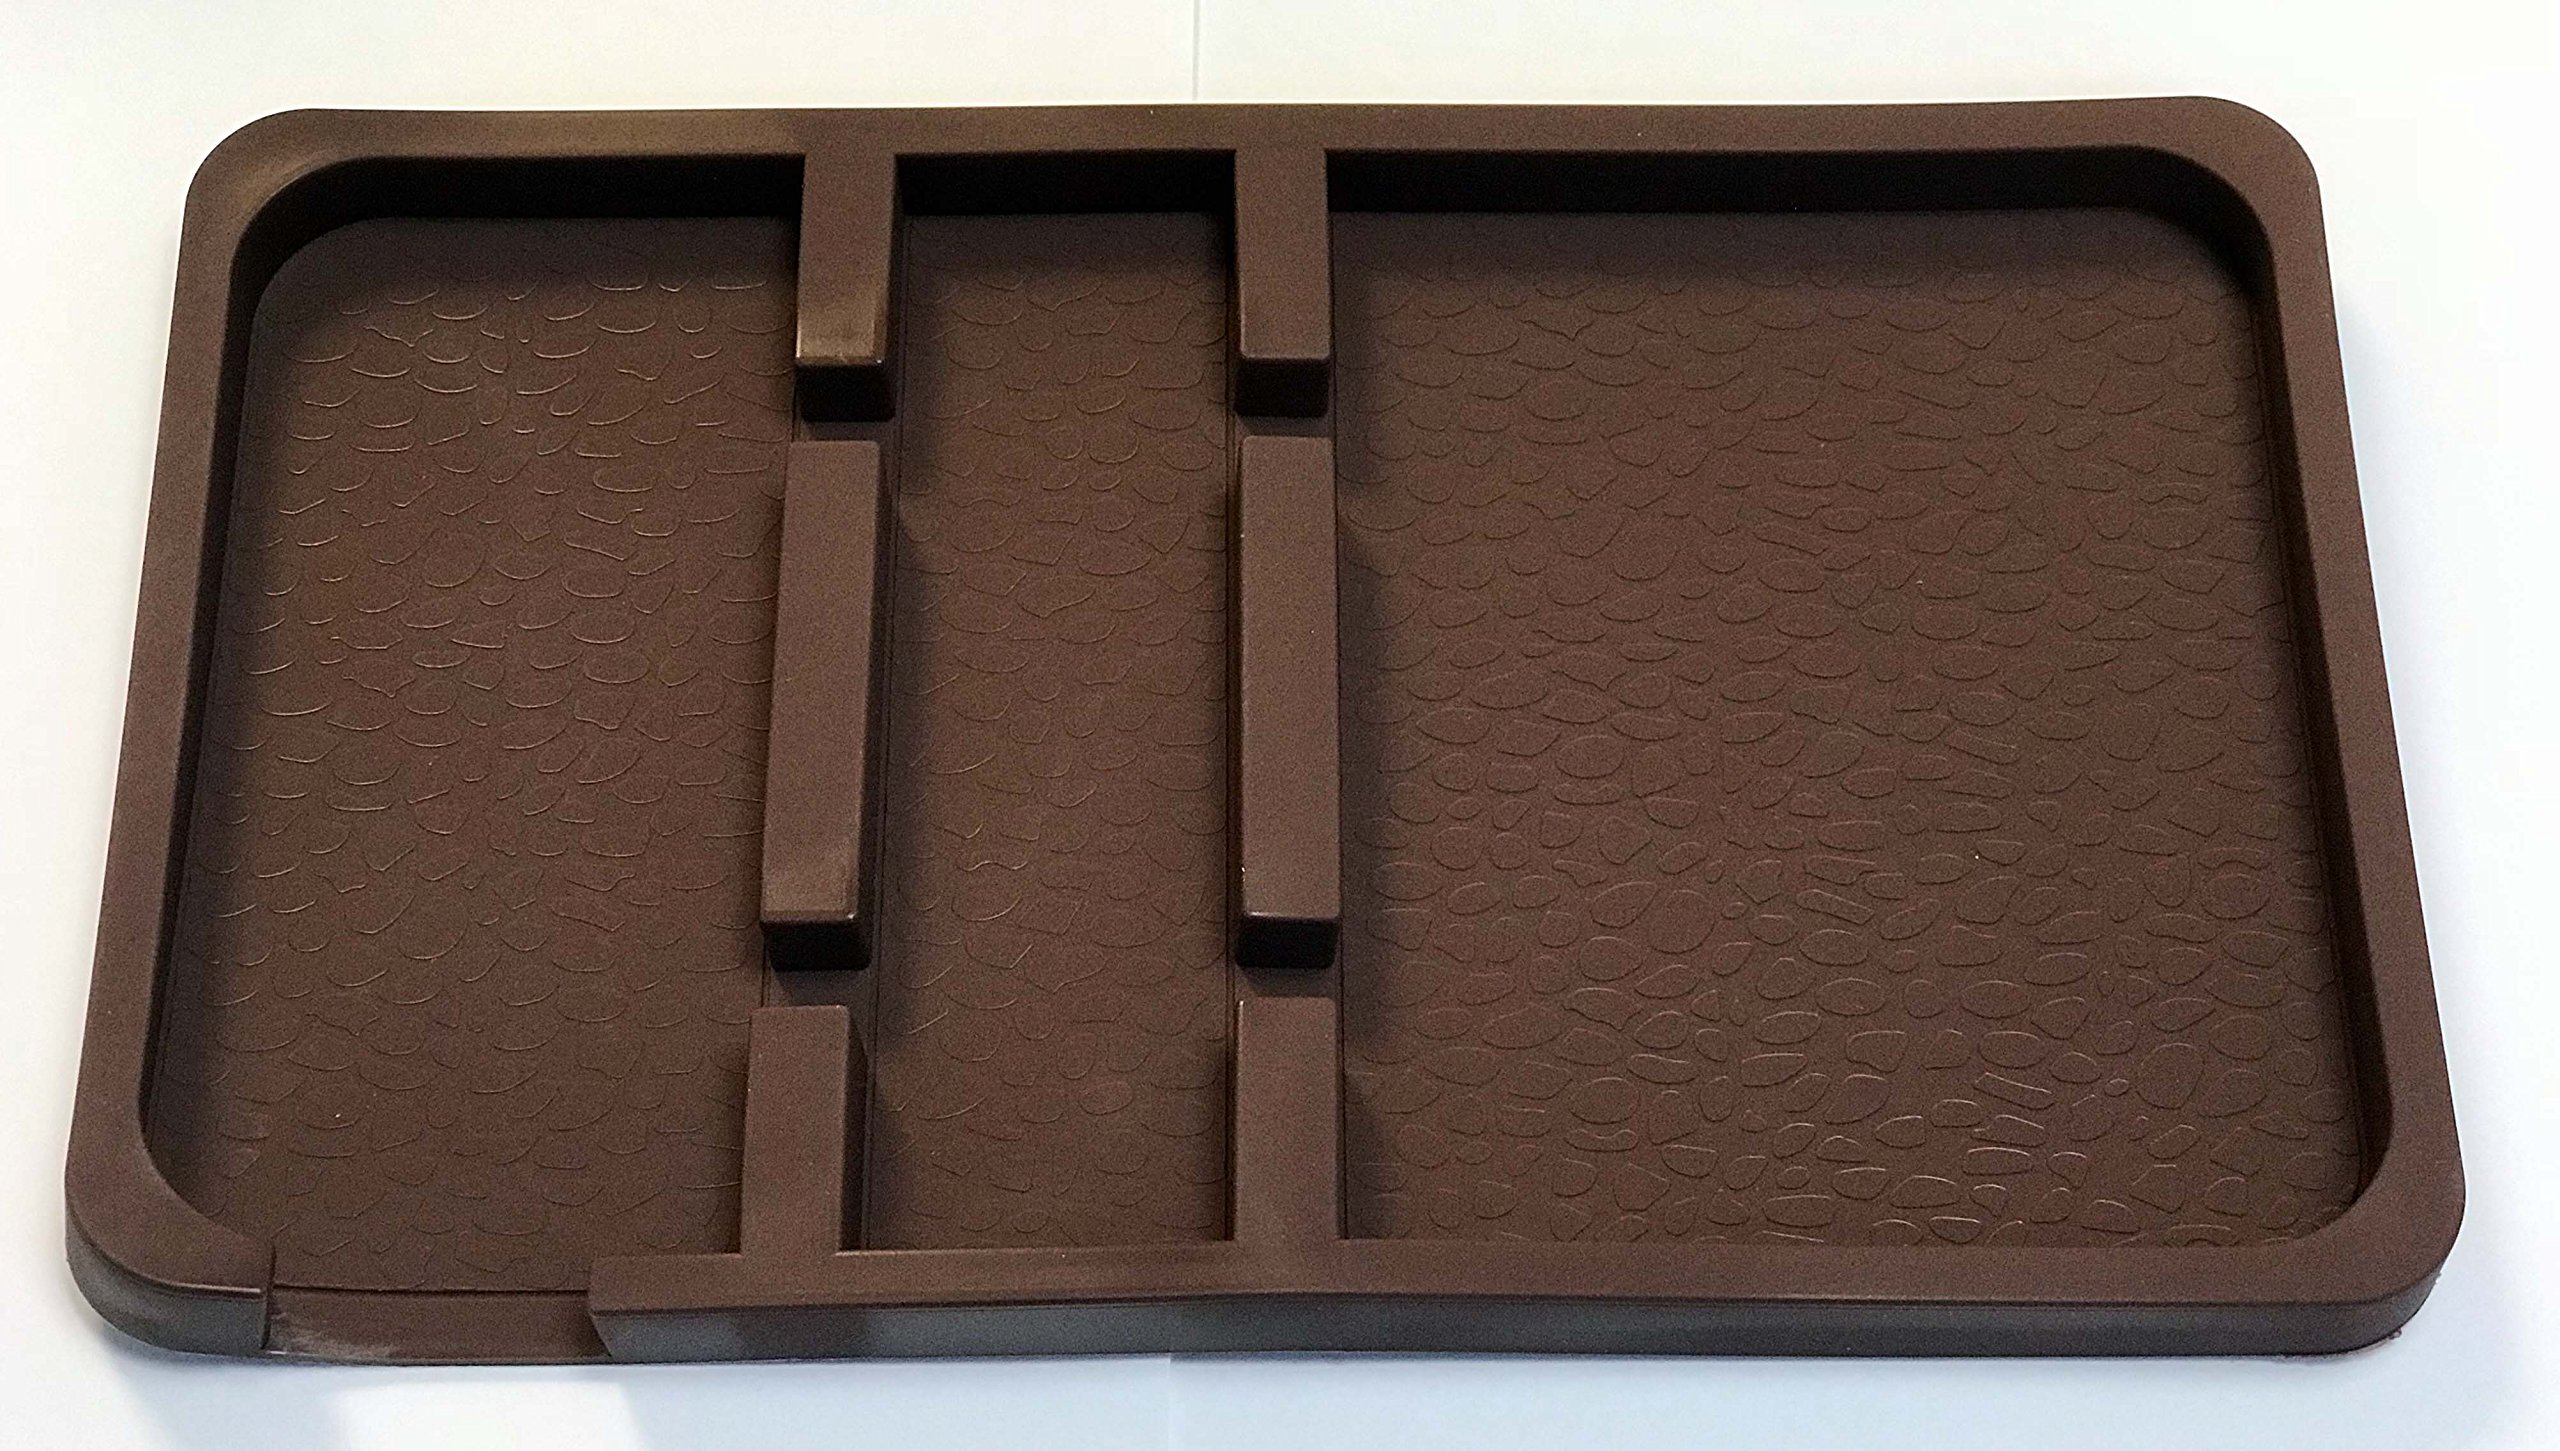 Super Bigger and Luxury leathery brown Non slip pad for car, Dashboard skid proof holder for navigation cell phone, key chains, sunglasses